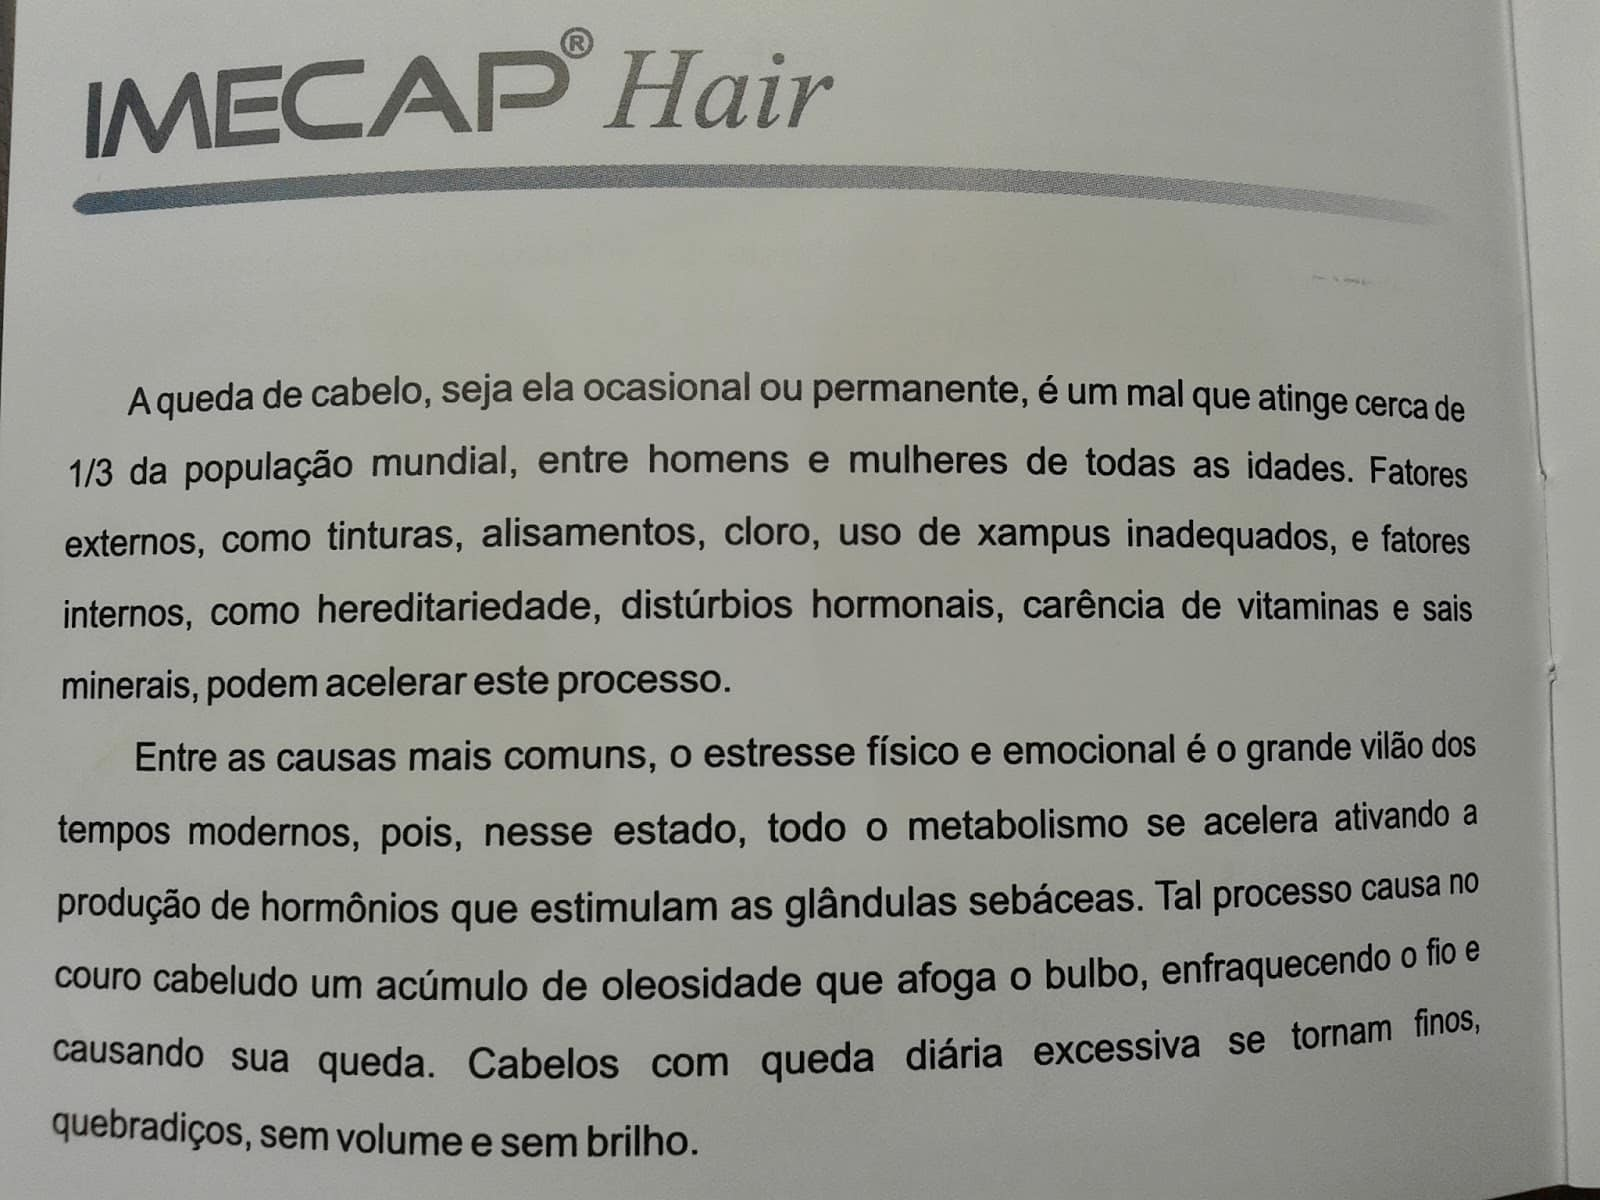 Impecap Hair funciona?